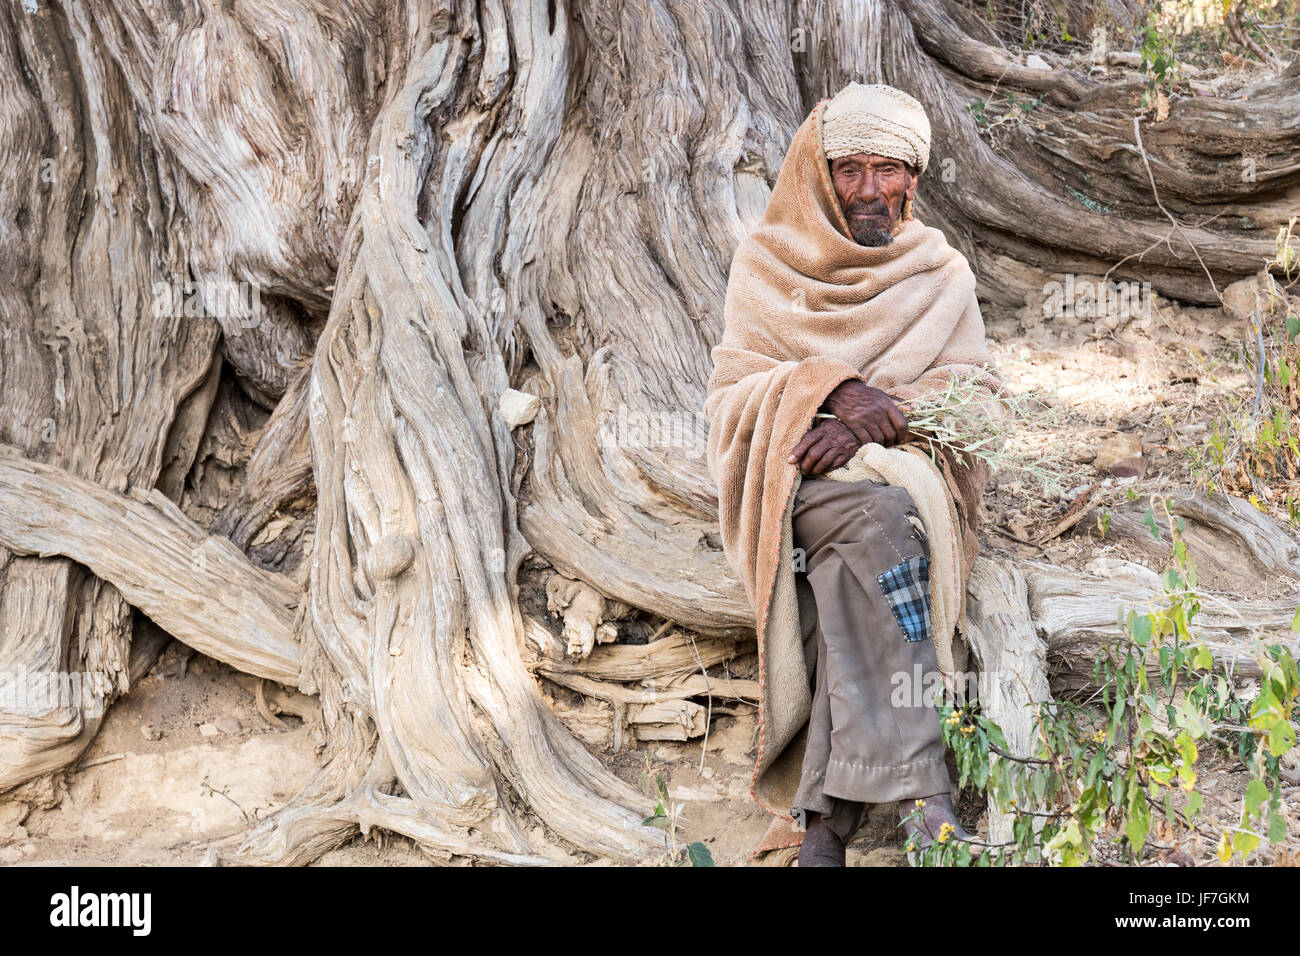 Adigrat, Ethiopia, An old farmer sitting on the roota of a tree in the village outskirts - Stock Image